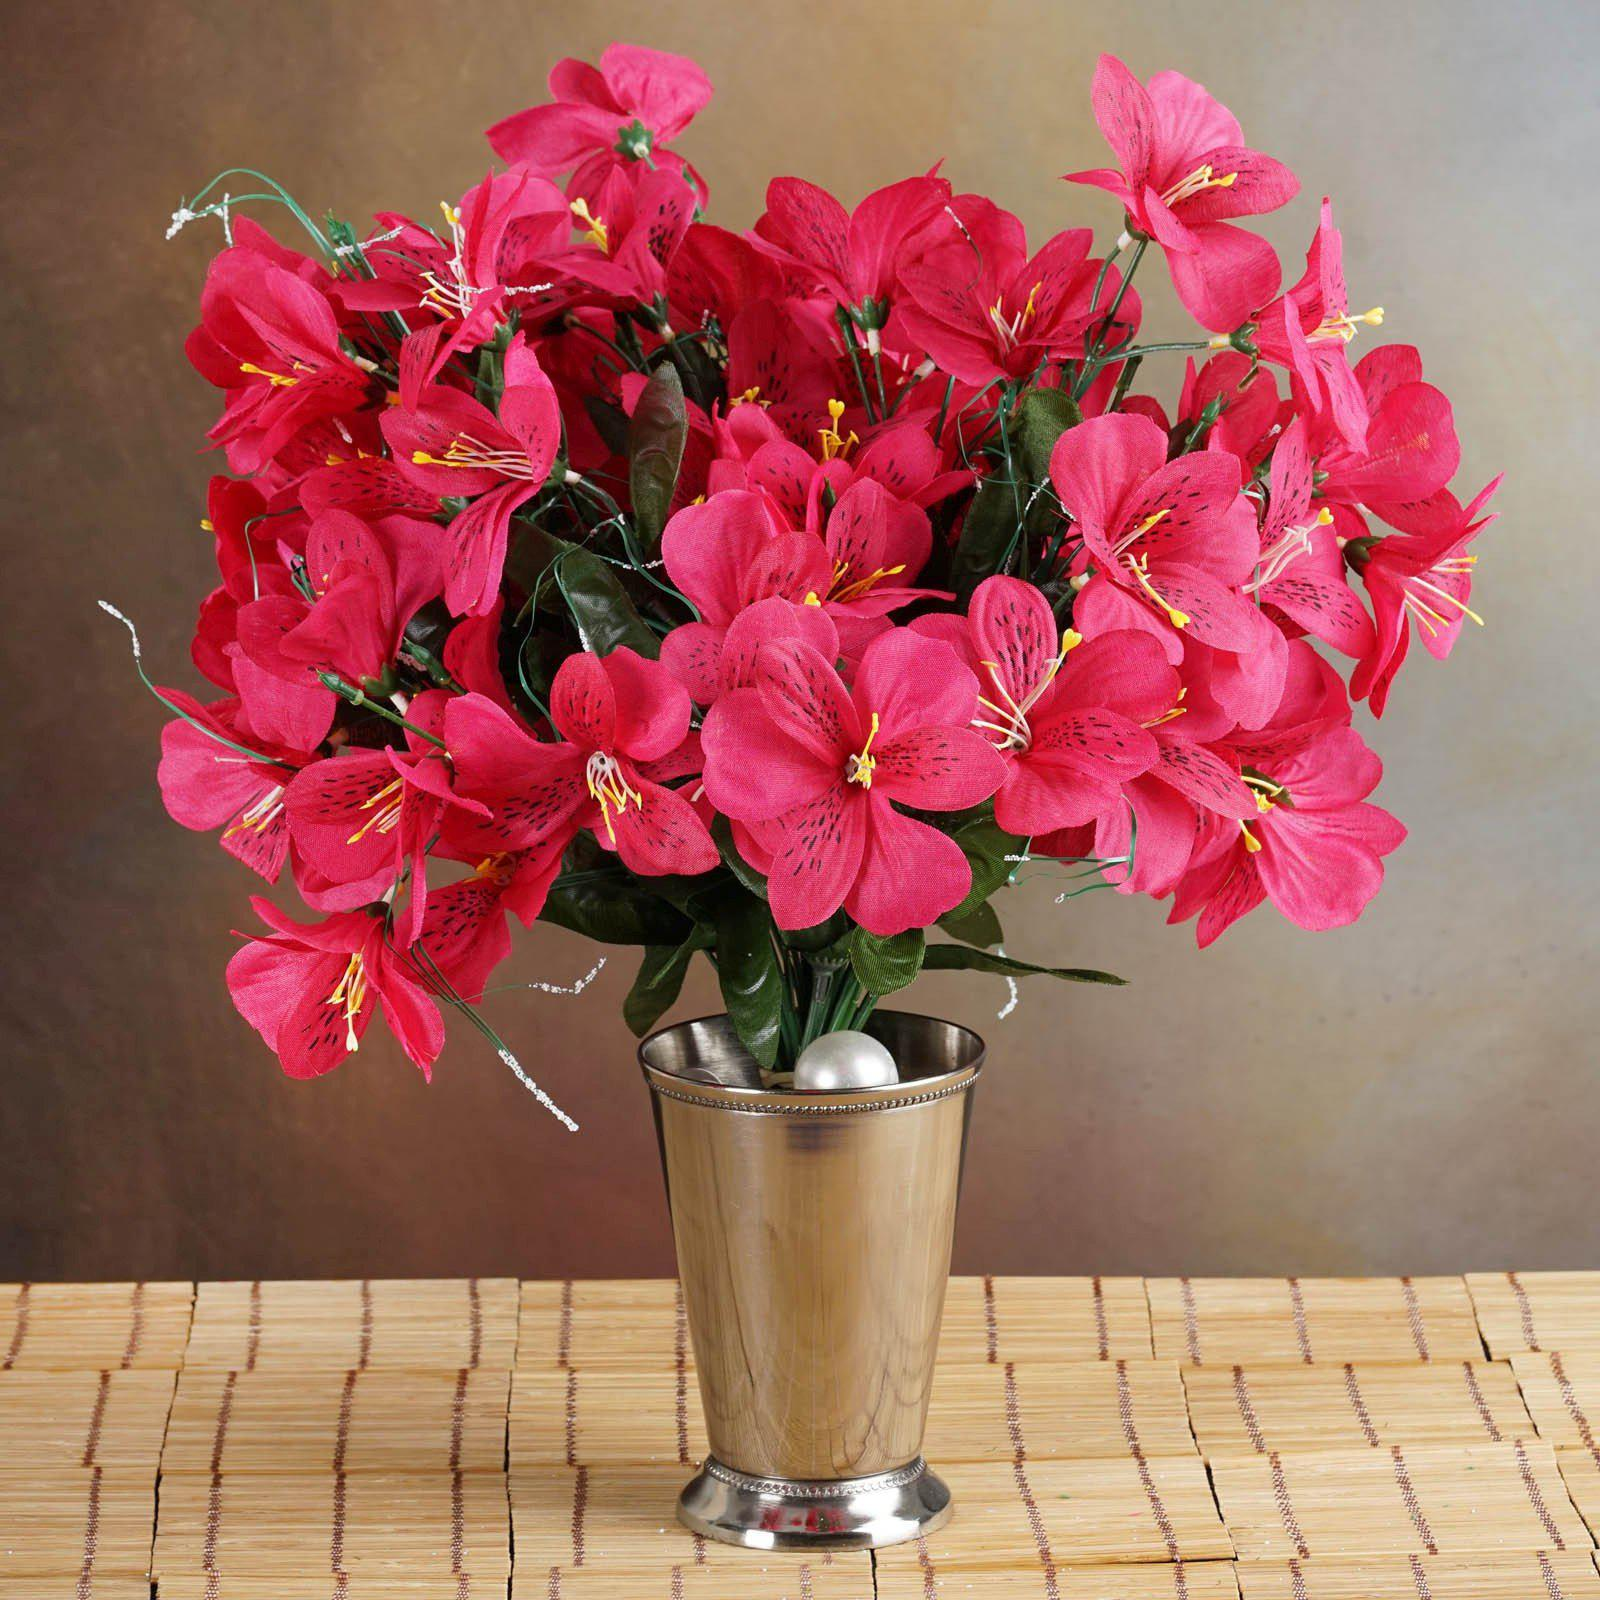 6 Bush 144 Pcs Fushia Amaryllis Artificial Silk Flowers Wedding